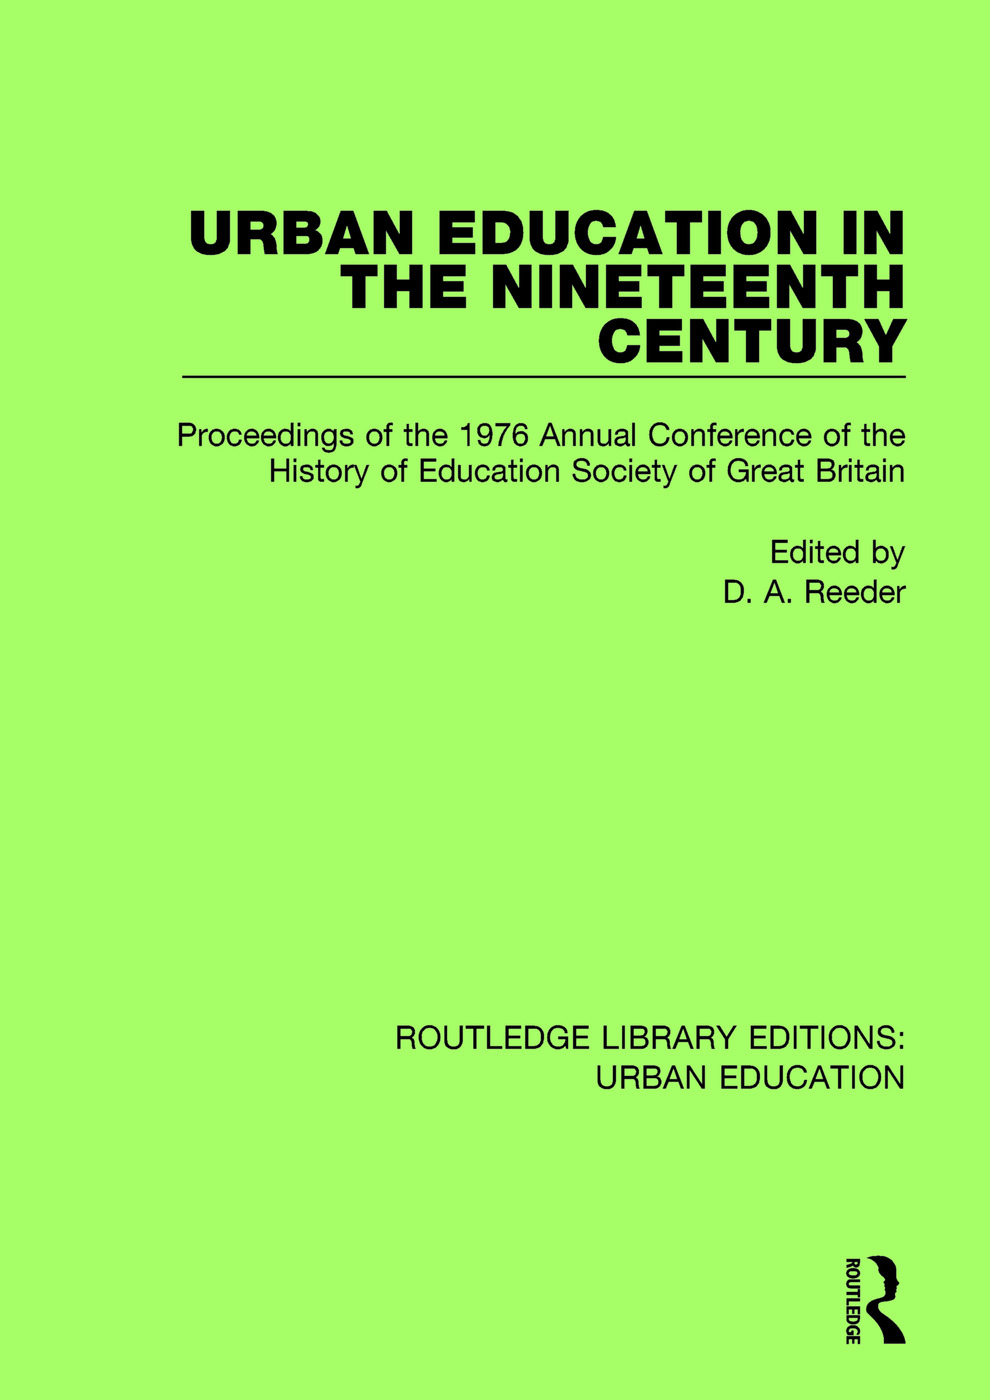 Urban Education in the 19th Century: Proceedings in the 1976 Annual Conference of the History of Education Society of Great Britain book cover